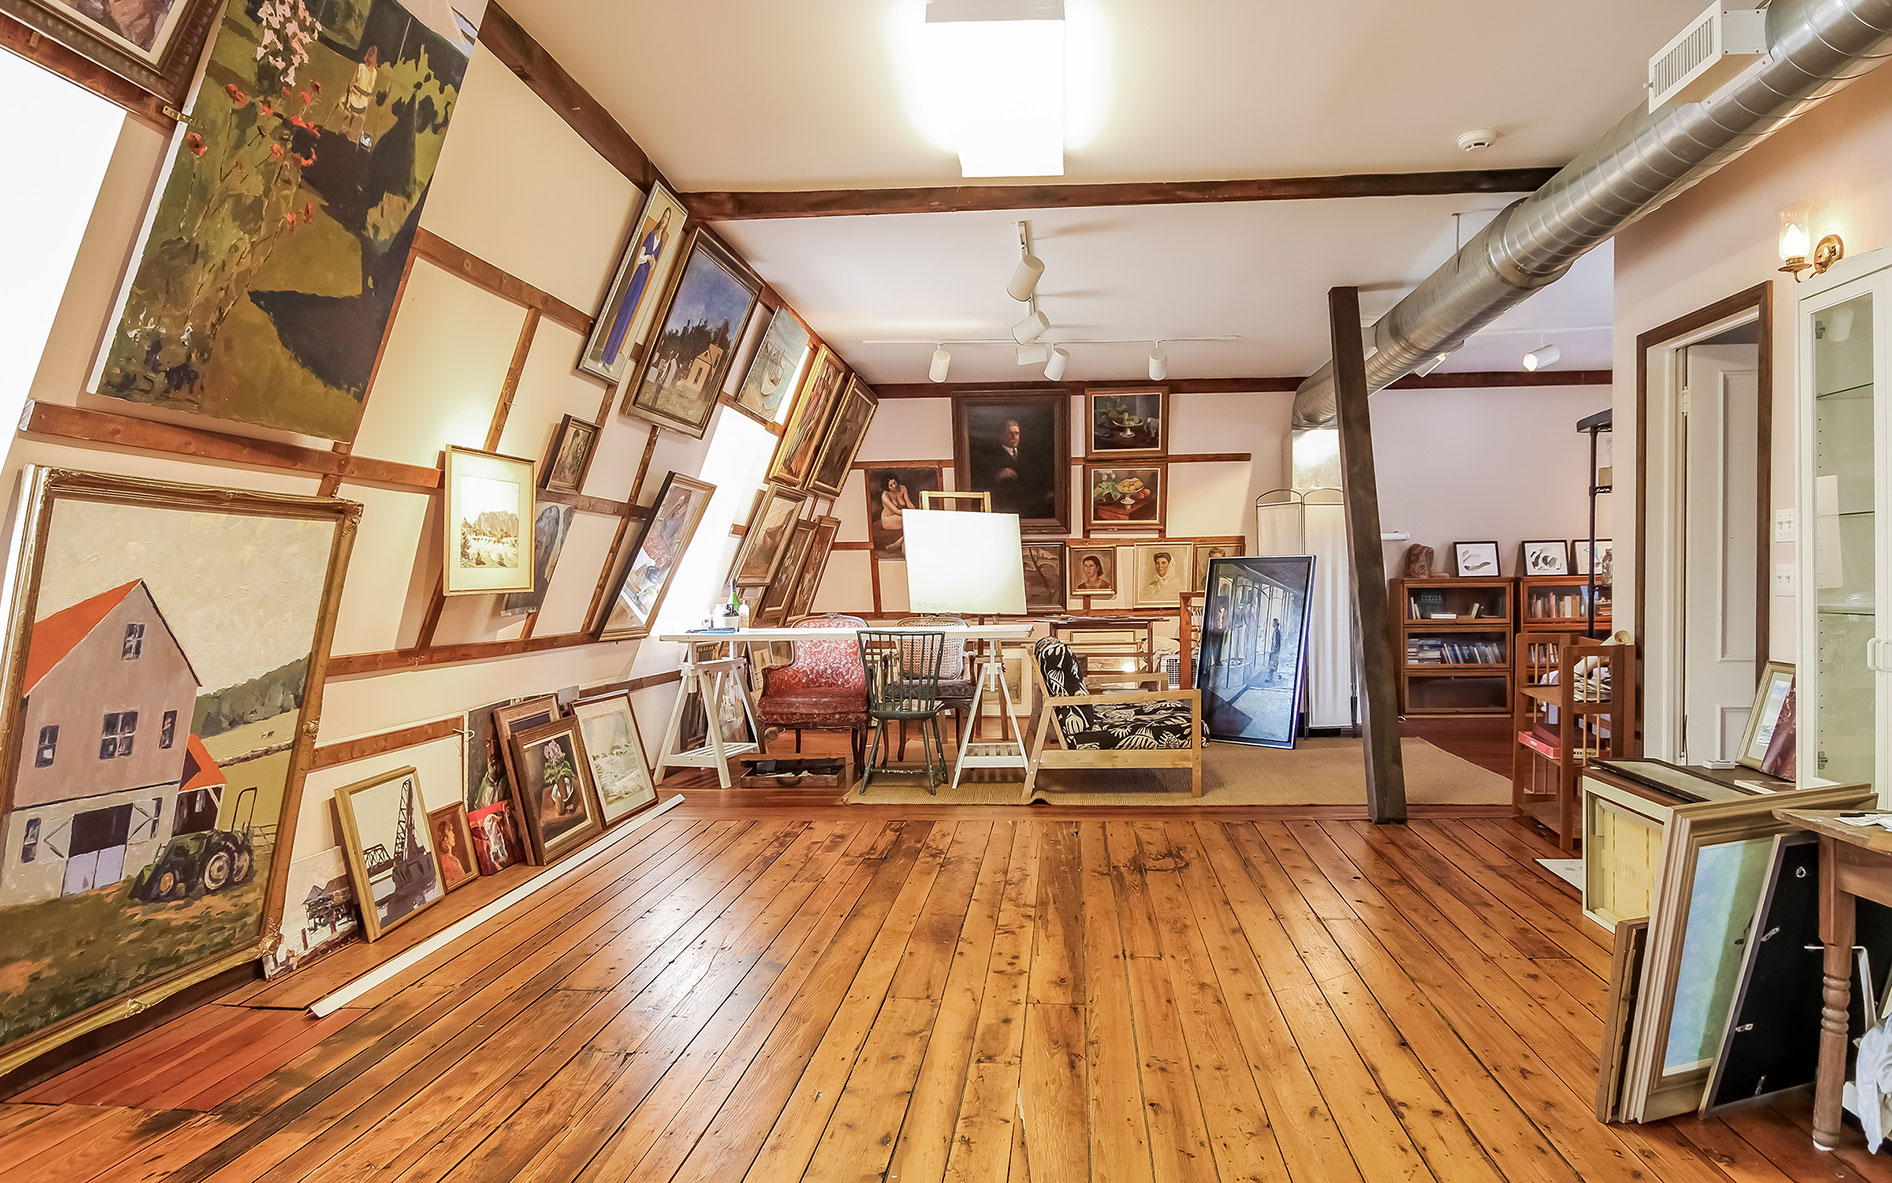 Luxury living Art galleries & artist's studios